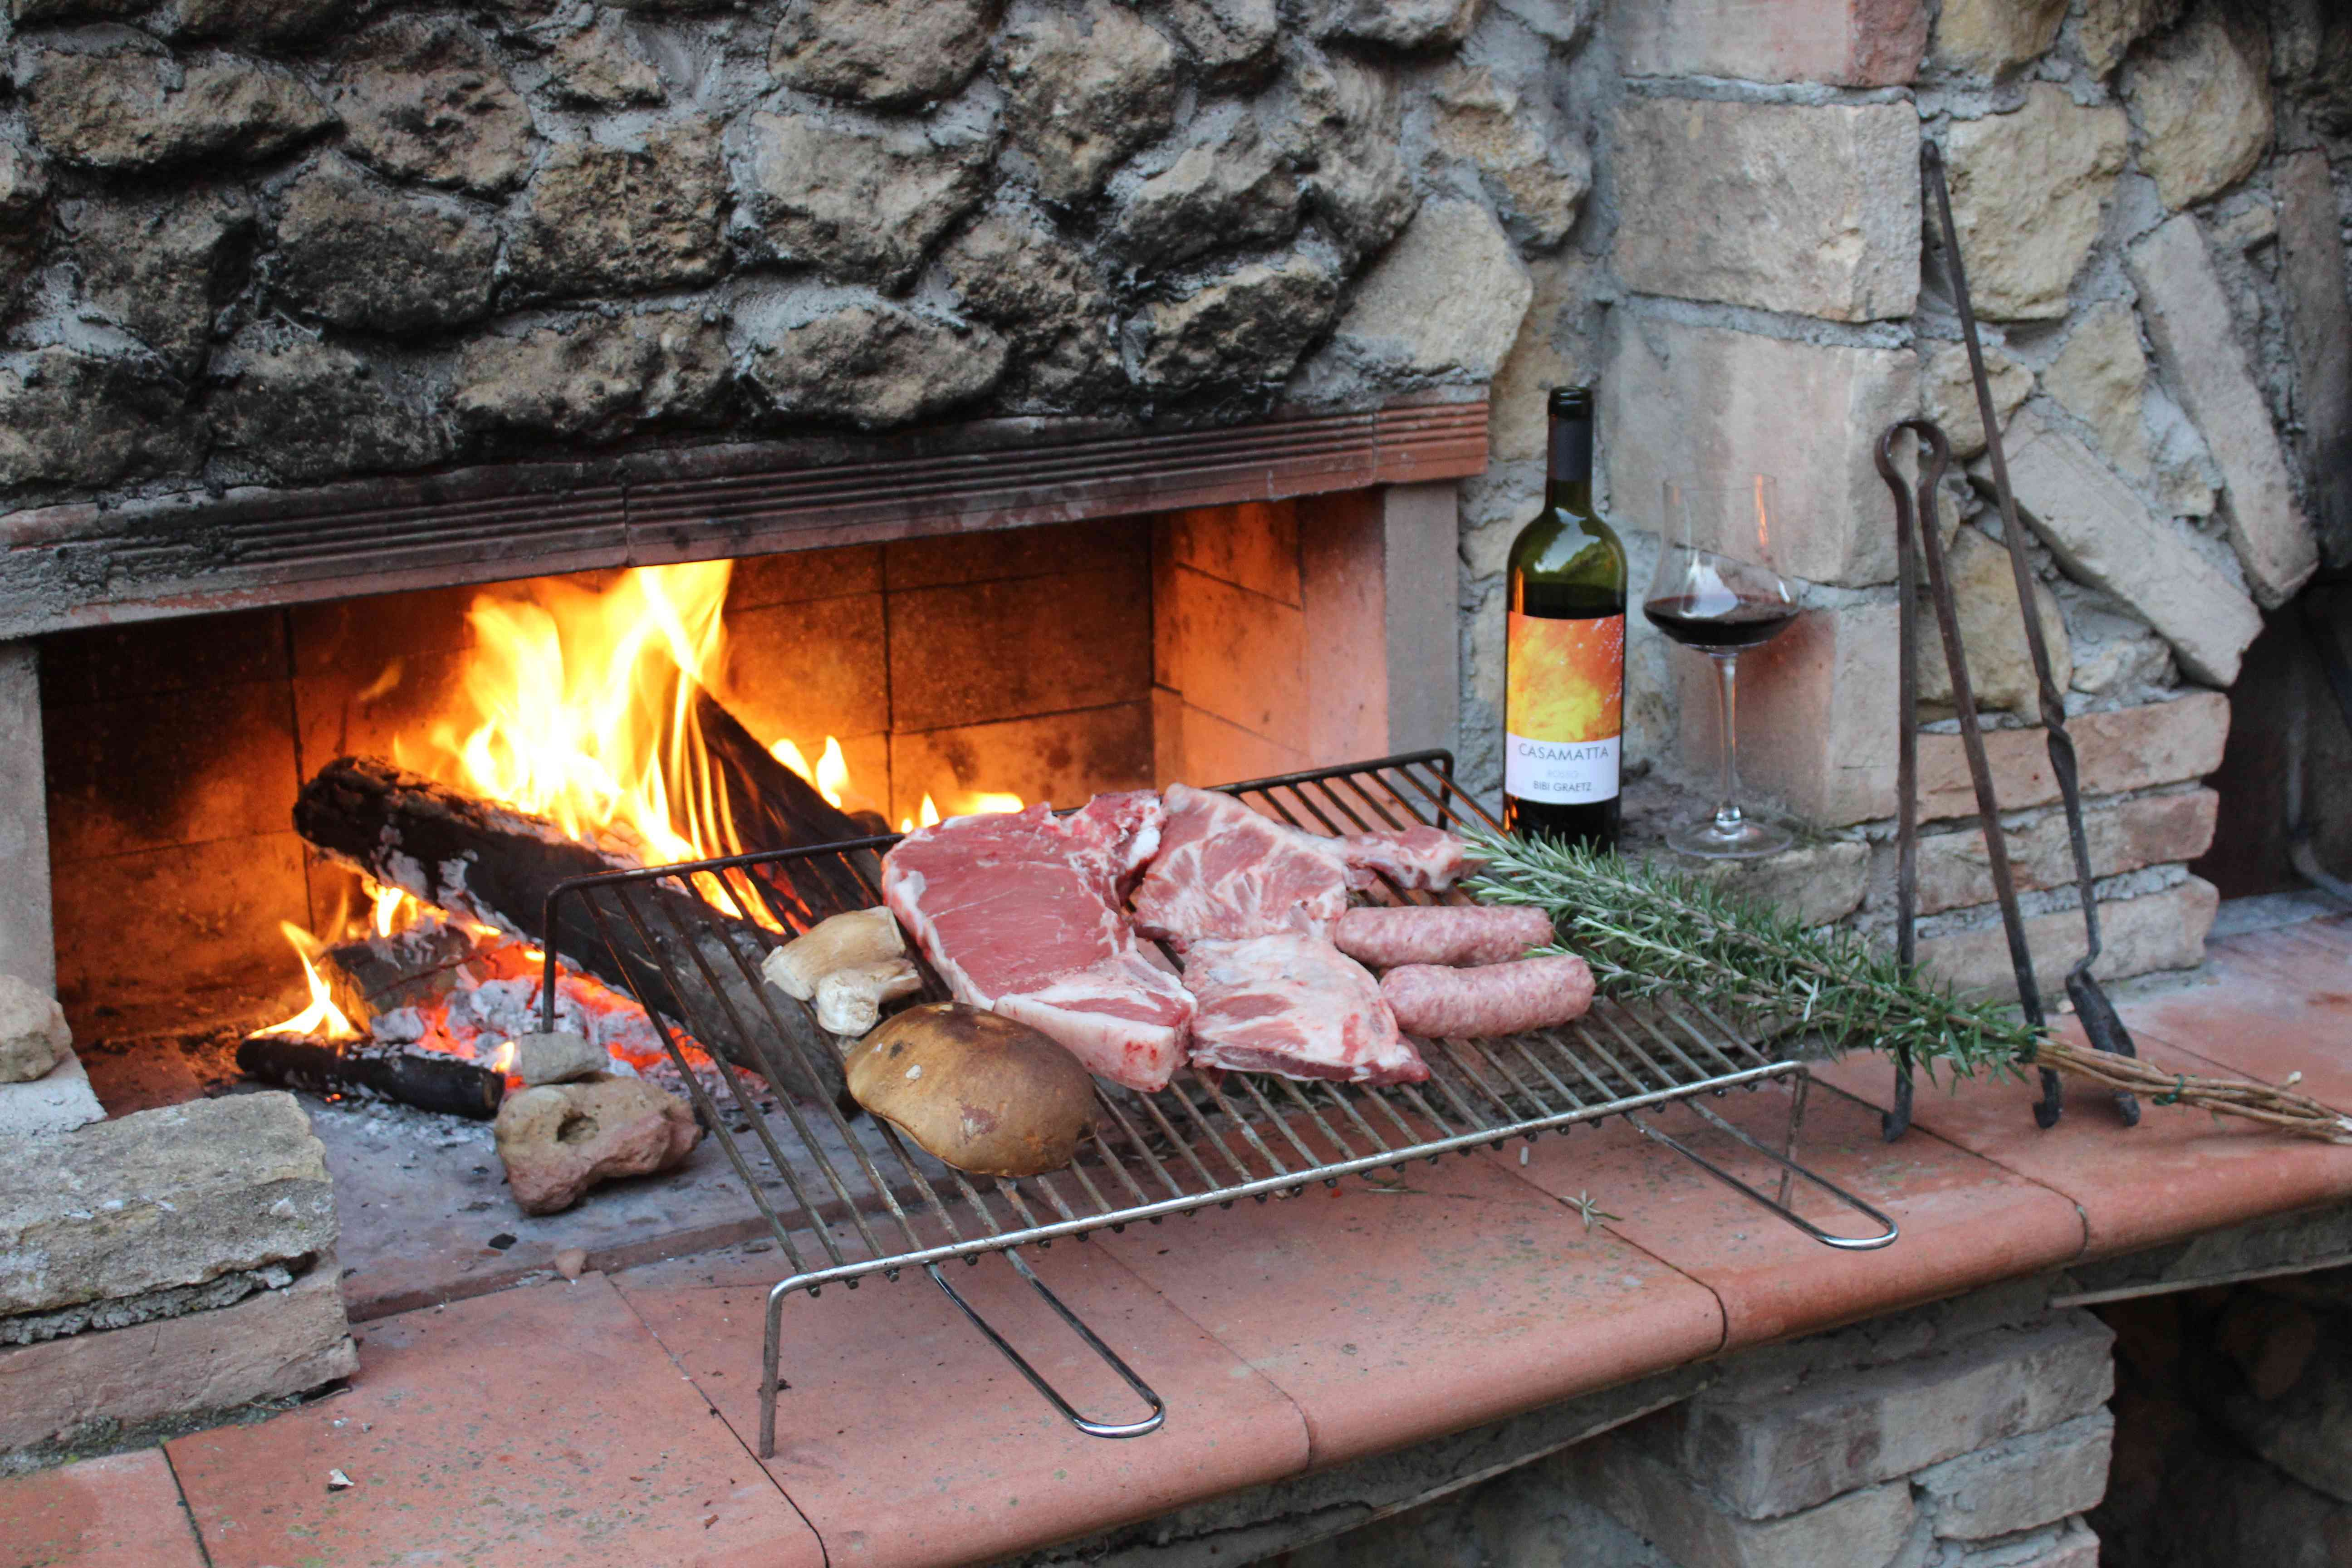 Meat, rosemary and wine